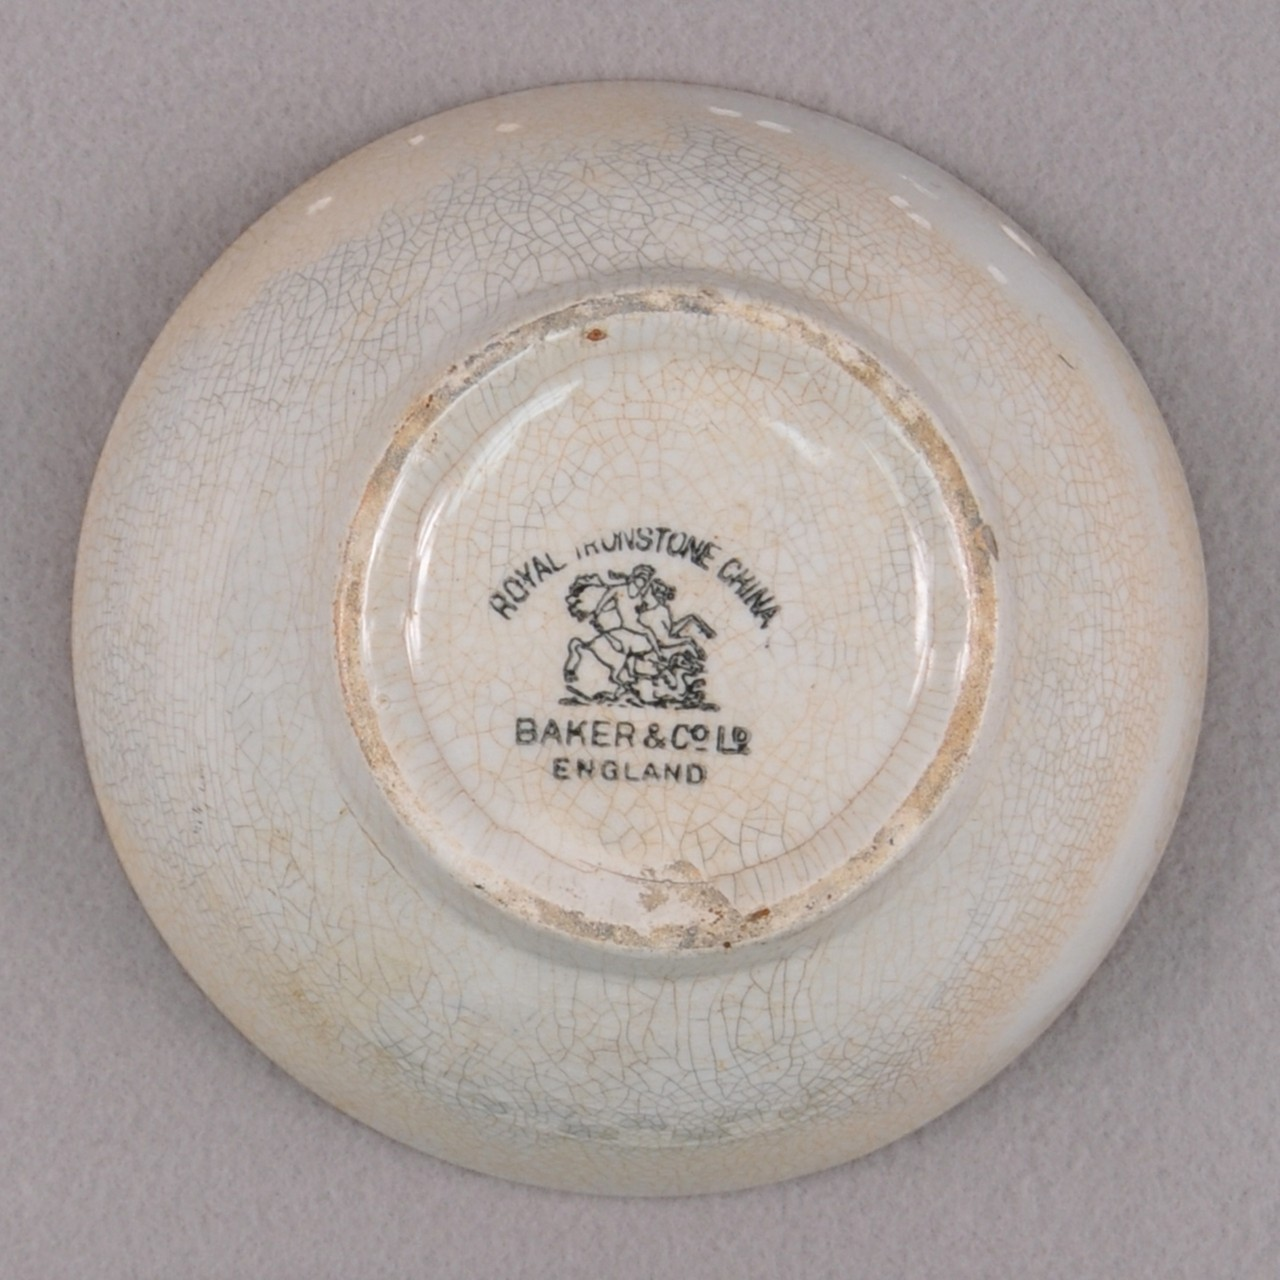 "An undecorated white stoneware bowl with cracked glaze from USS San Diego. A maker's mark of a man riding a horse and the words ""Royal Ironstone China"" and ""Baker & Co Ltd. England"" around the mark located at the bowl's base."